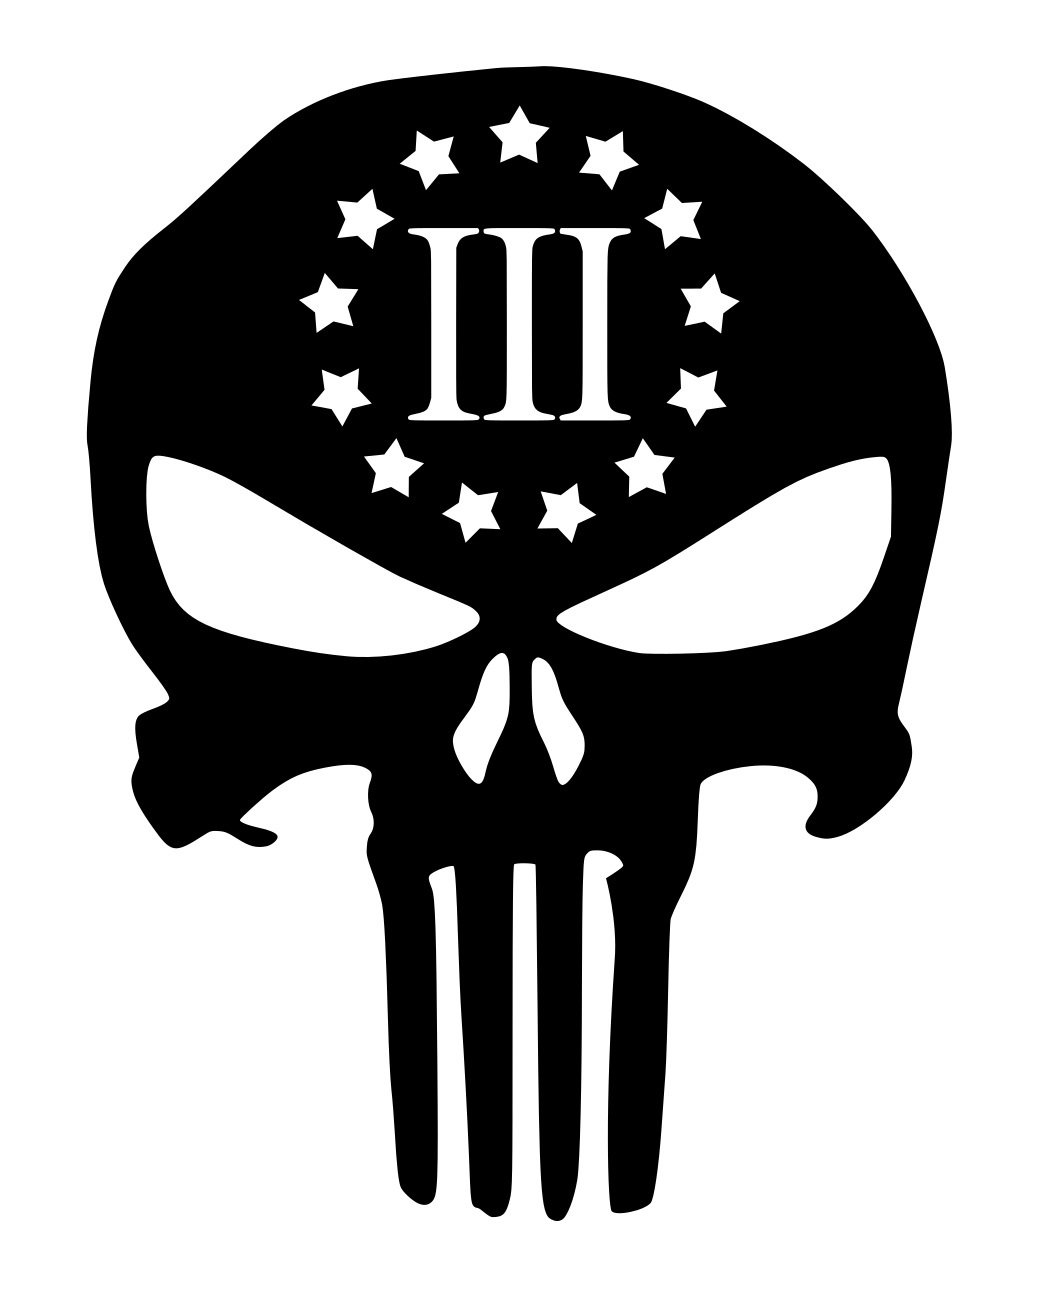 Amazon com ur impressions red 3 percenter punisher skull decal vinyl sticker graphics cars trucks suv vans walls windows laptopred5 5 x 4 3